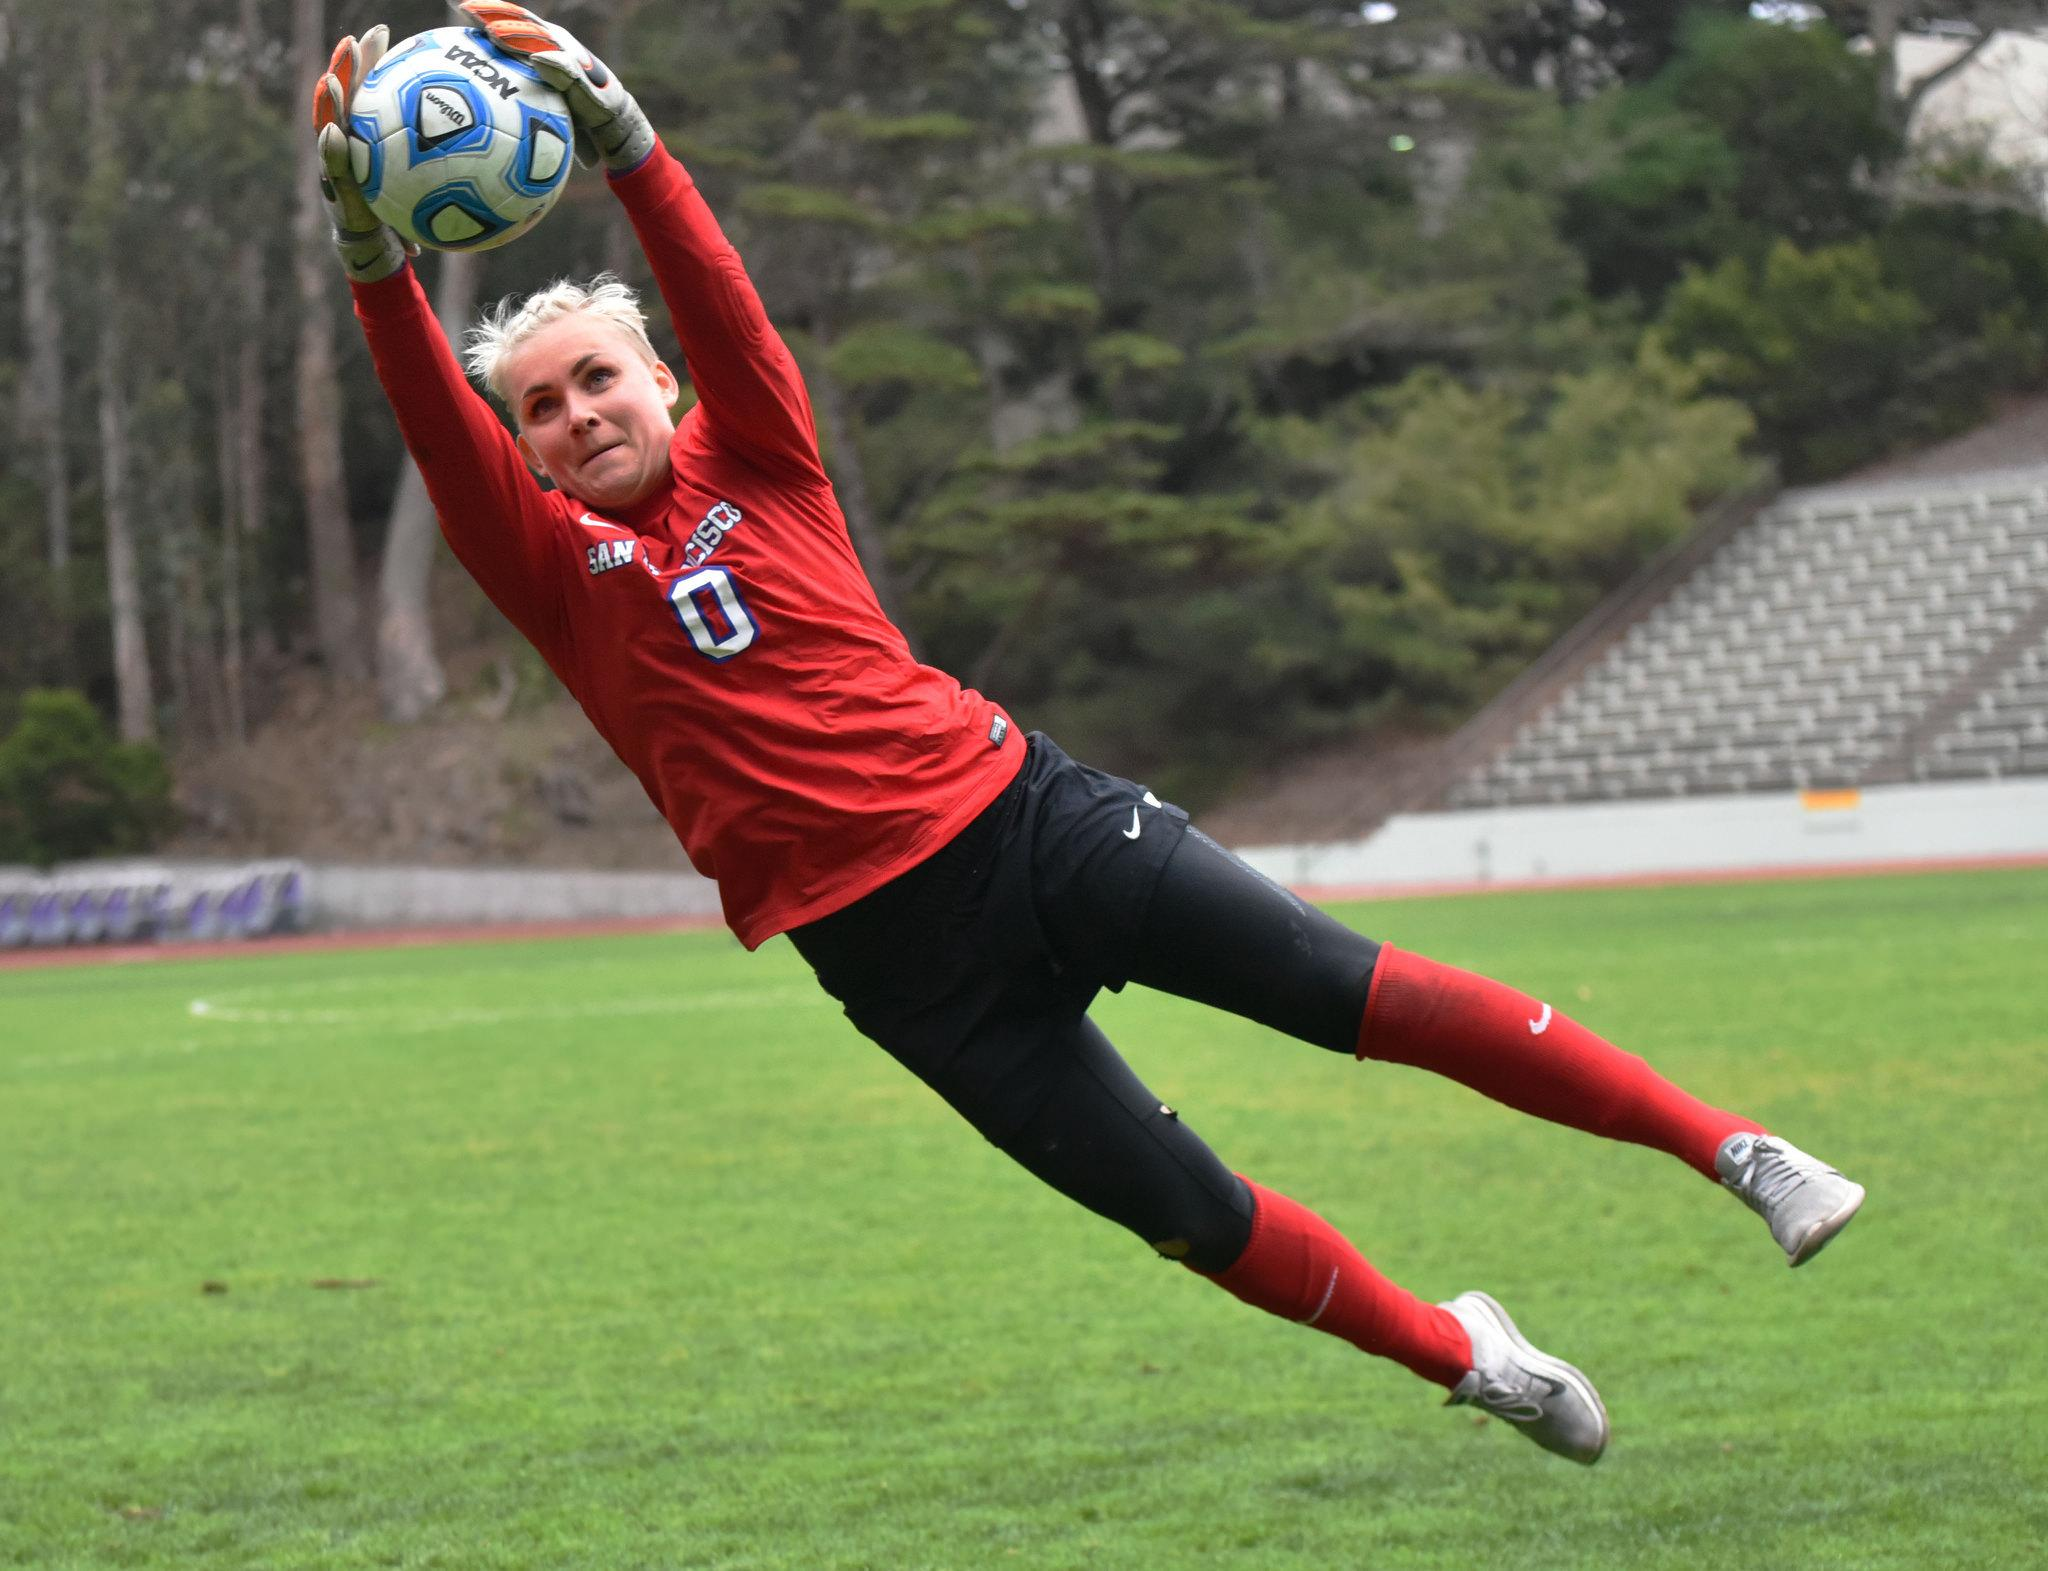 Karin Nordin, goalie of SF State Gators, practices at Cox Stadium at SF State Tuesday, Sep.22. (Qing Huang / Xpress)